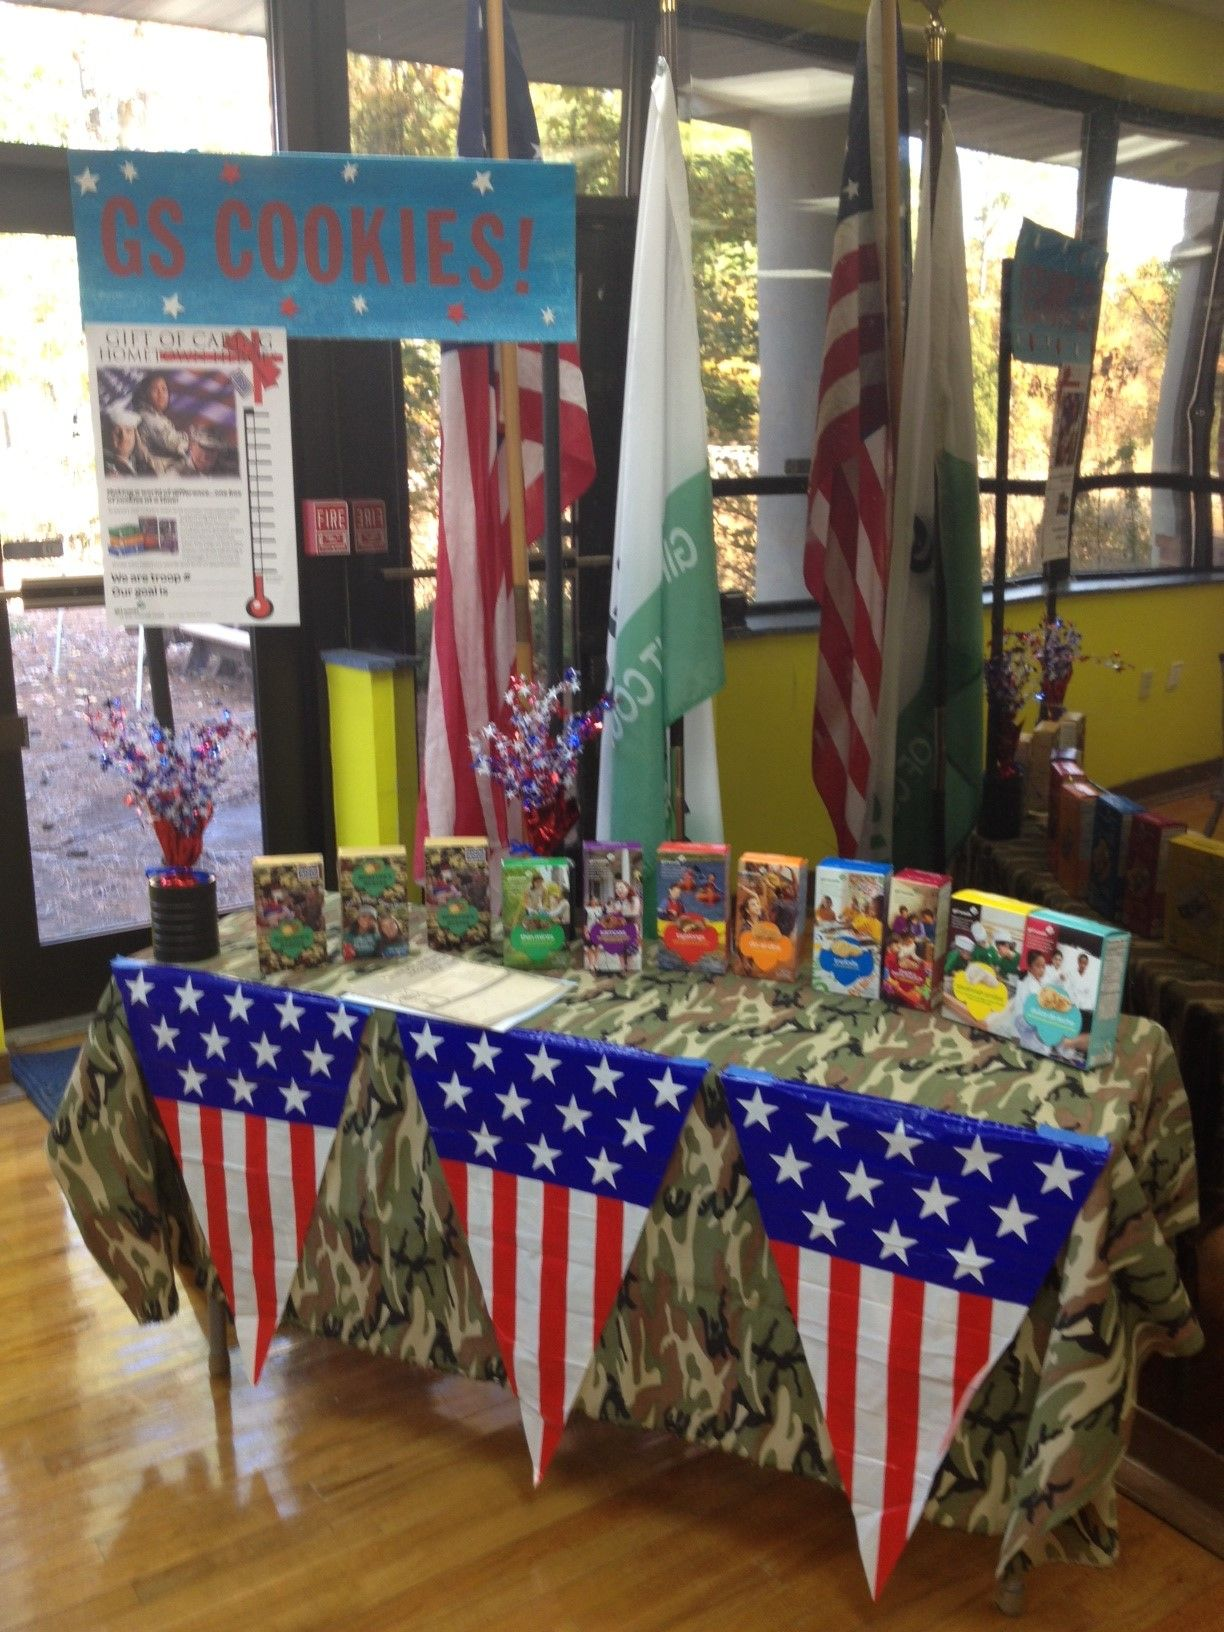 Girl scout scrapbook ideas - Decorate Your Girl Scout Cookie Booth To Promote The Hometown Heroes Gift Of Caring Program Hamman Good Idea For Next Year